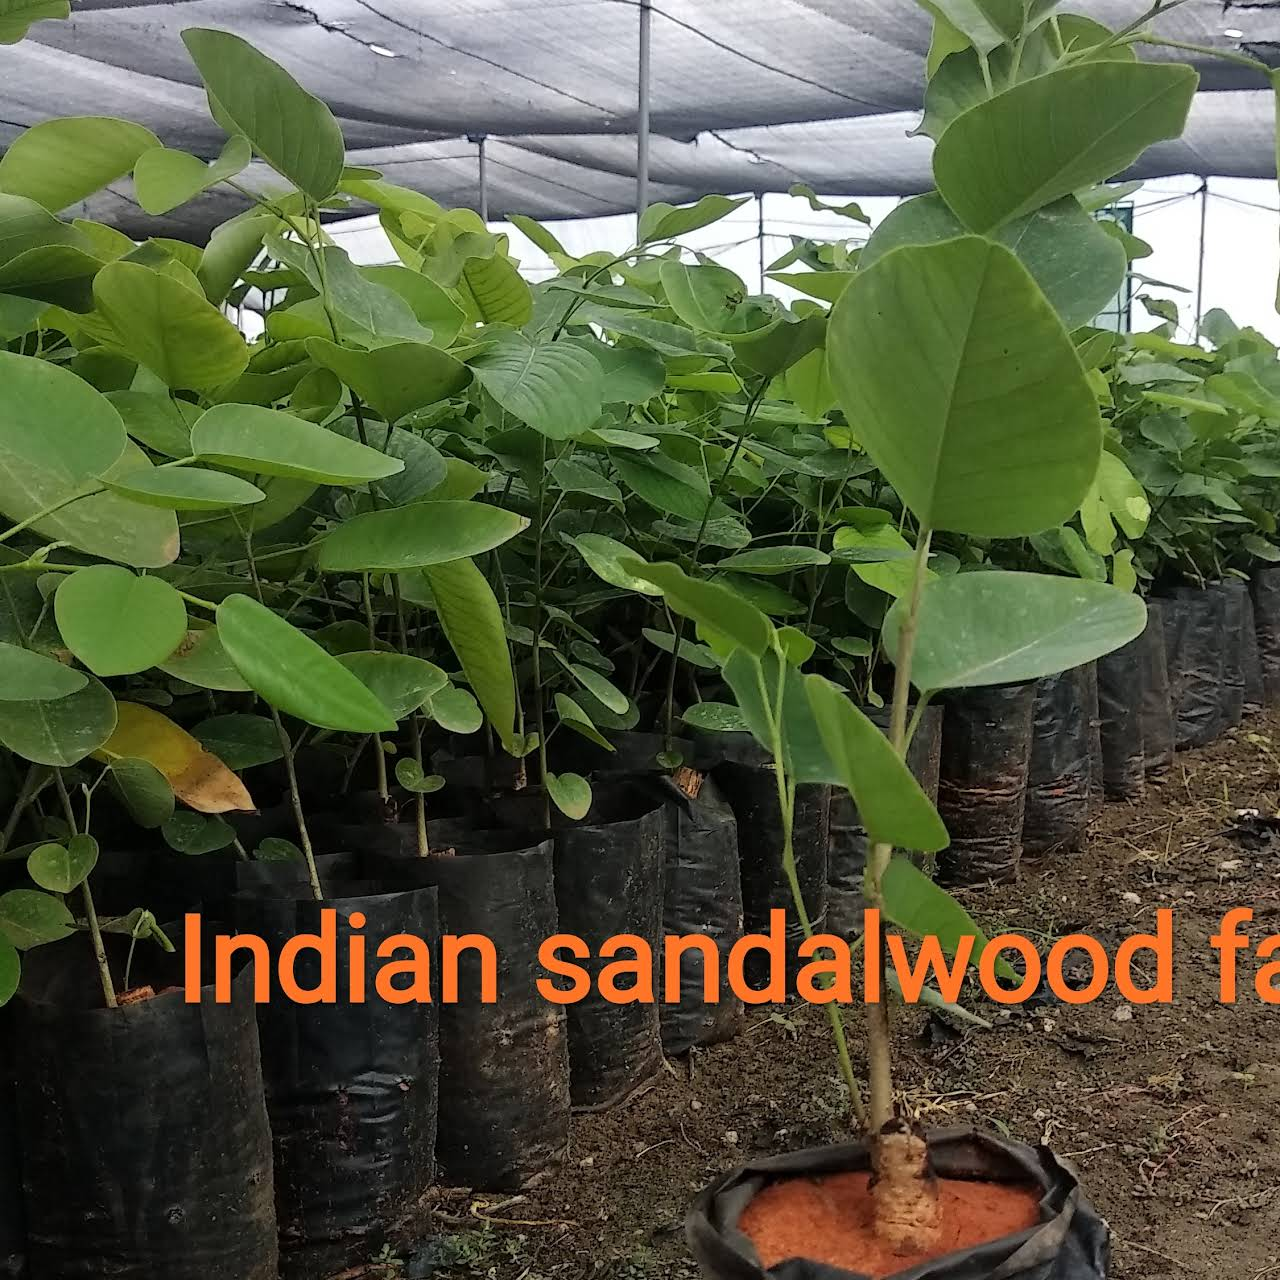 Indian sandalwood farms - For Horticulture and Forestry plants